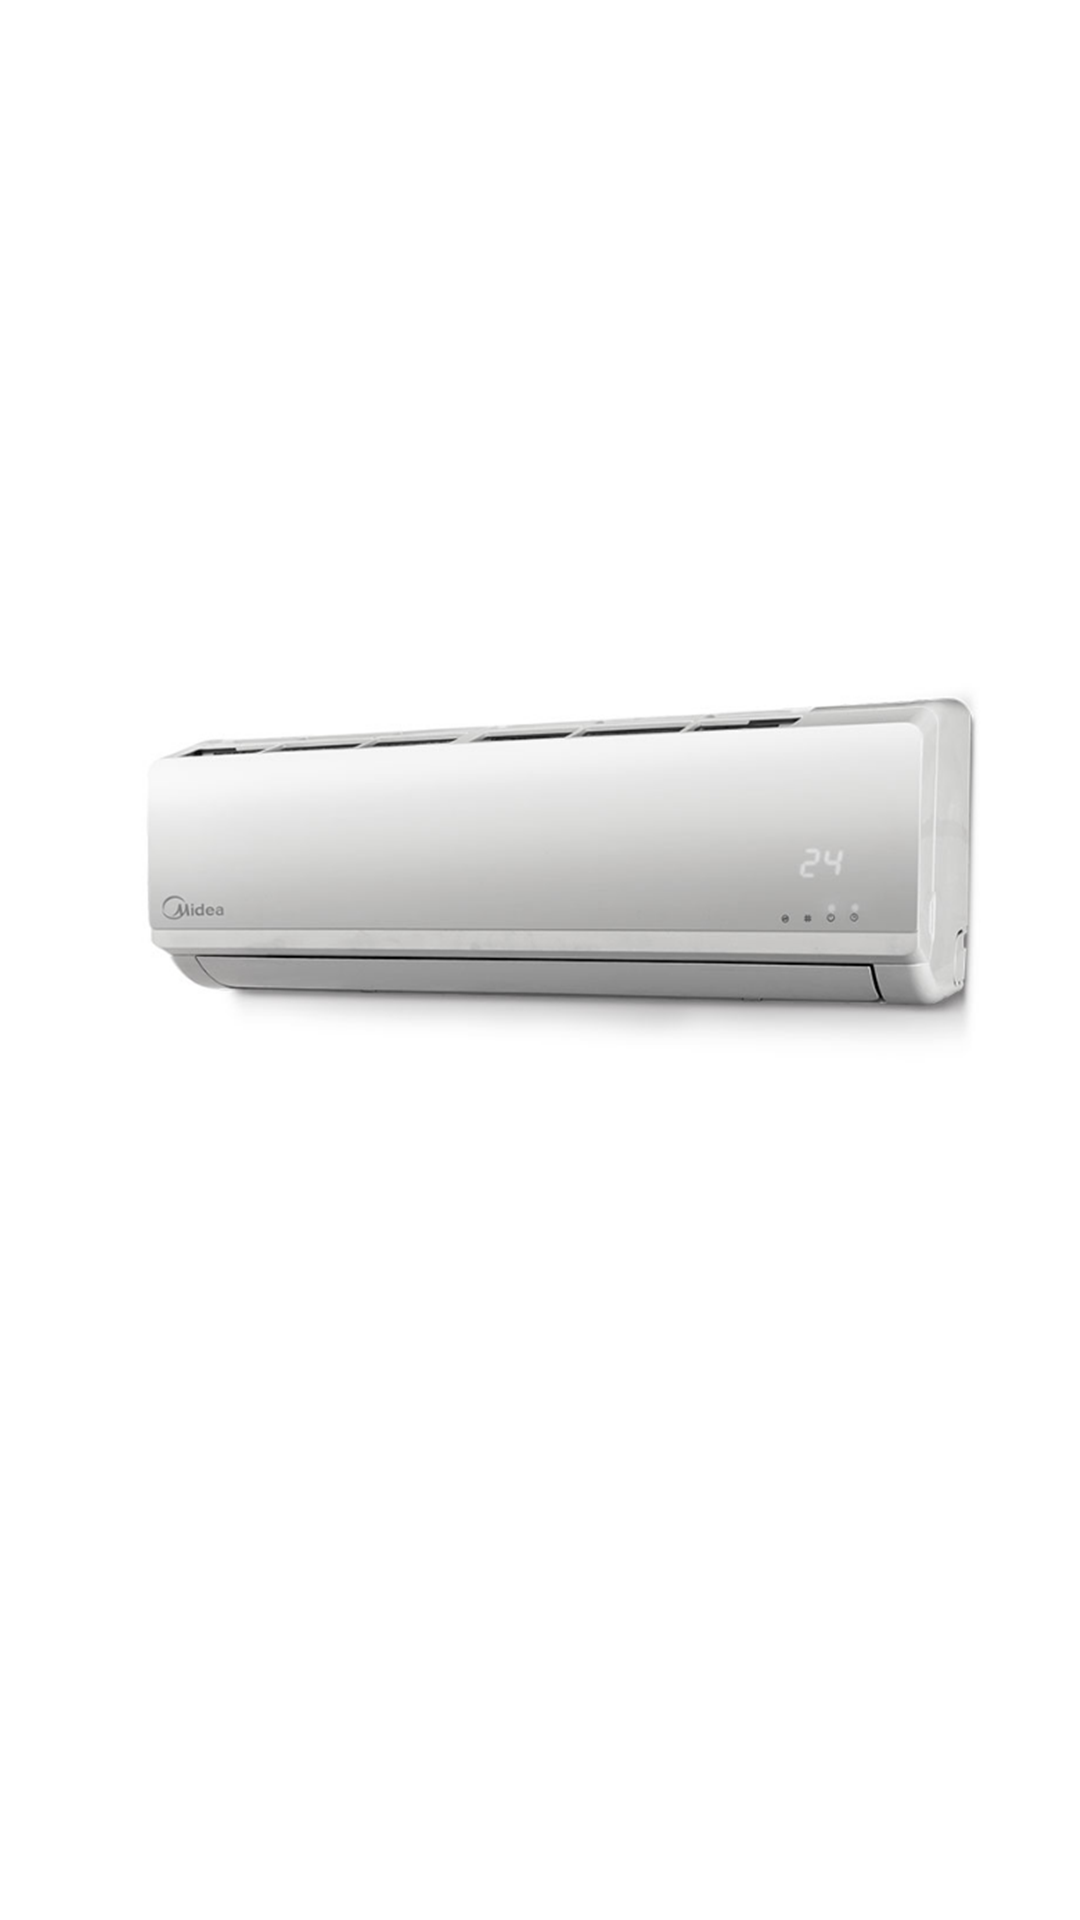 Midea Flair 3 Star 1.5 Ton Split AC